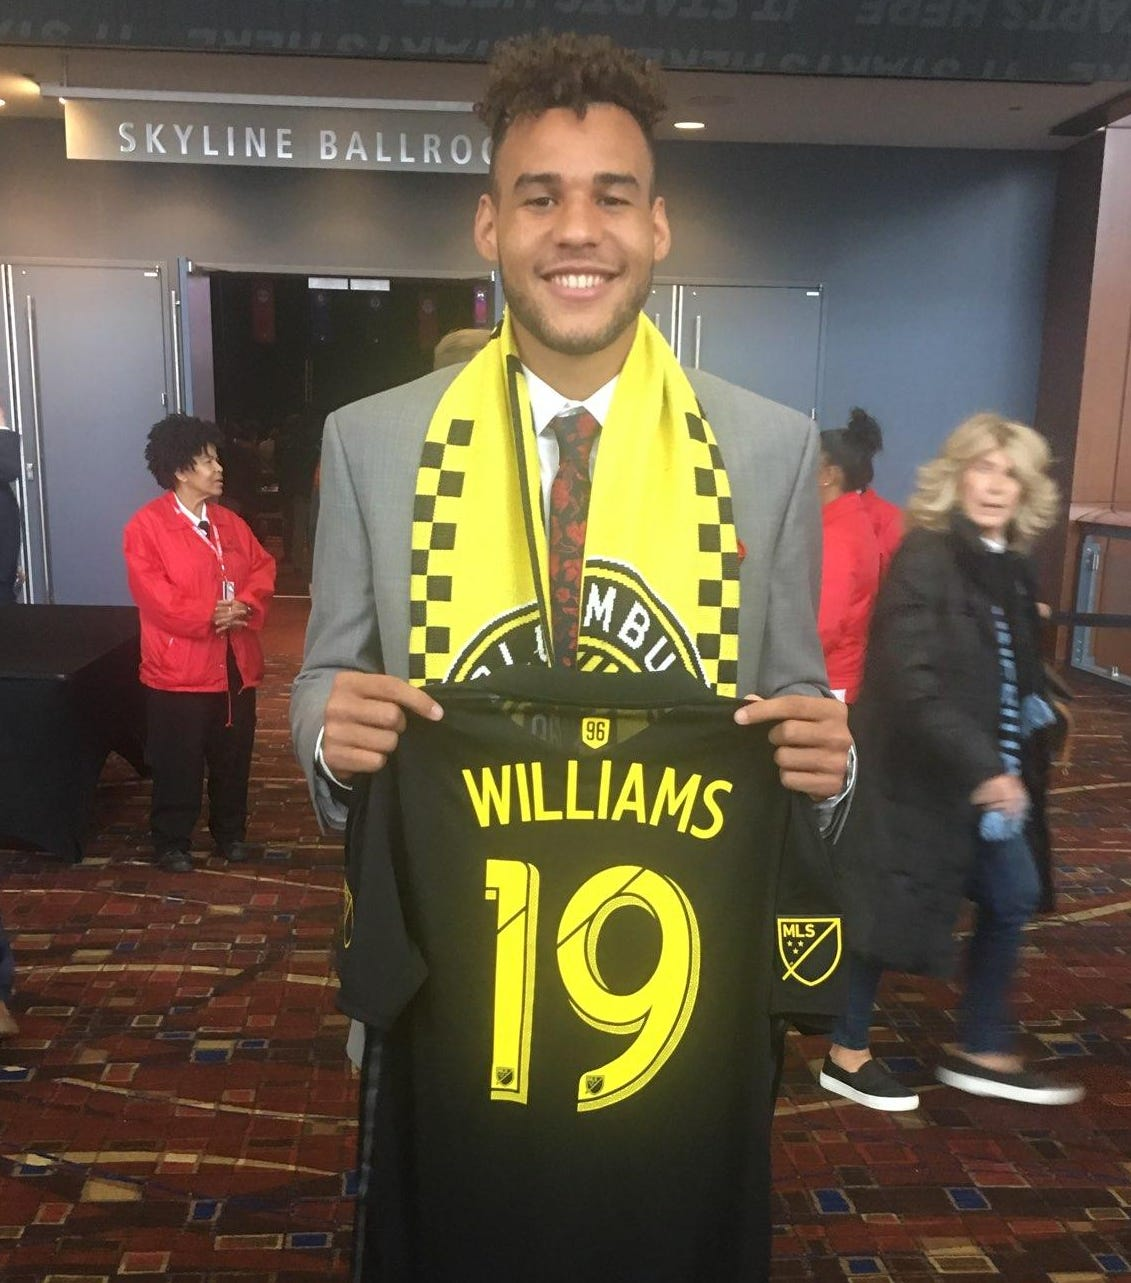 J.J. Williams shows off his new Columbus Crew gear after being taken with the 18th overall pick in last weekend's Major League Soccer draft.